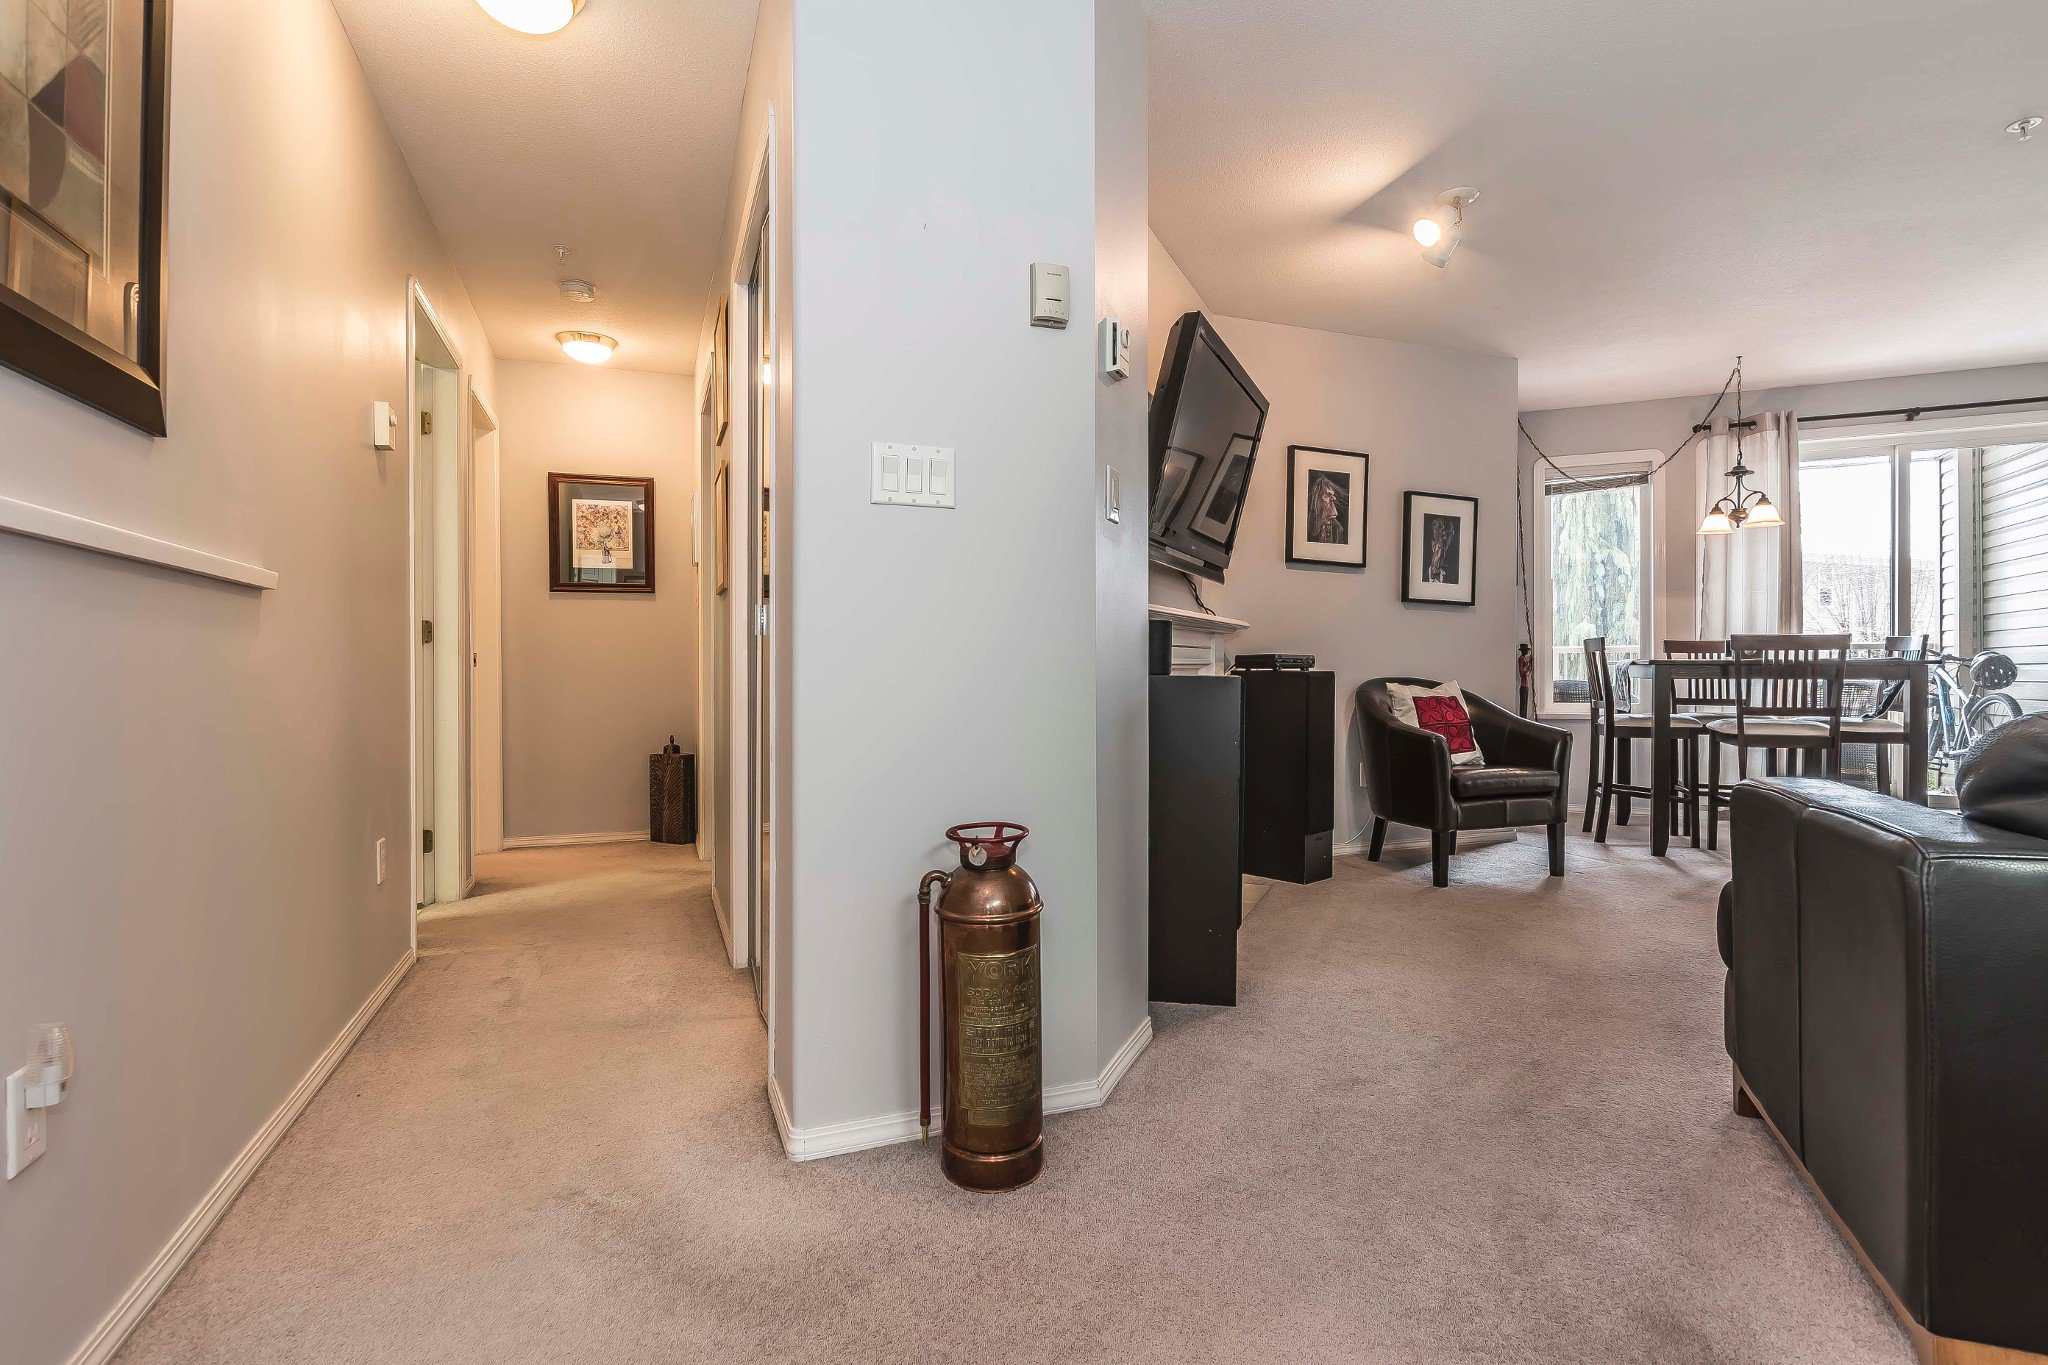 Photo 13: Photos: 210 46693 Yale Road in Chilliwack: Condo for sale : MLS®# r2231167